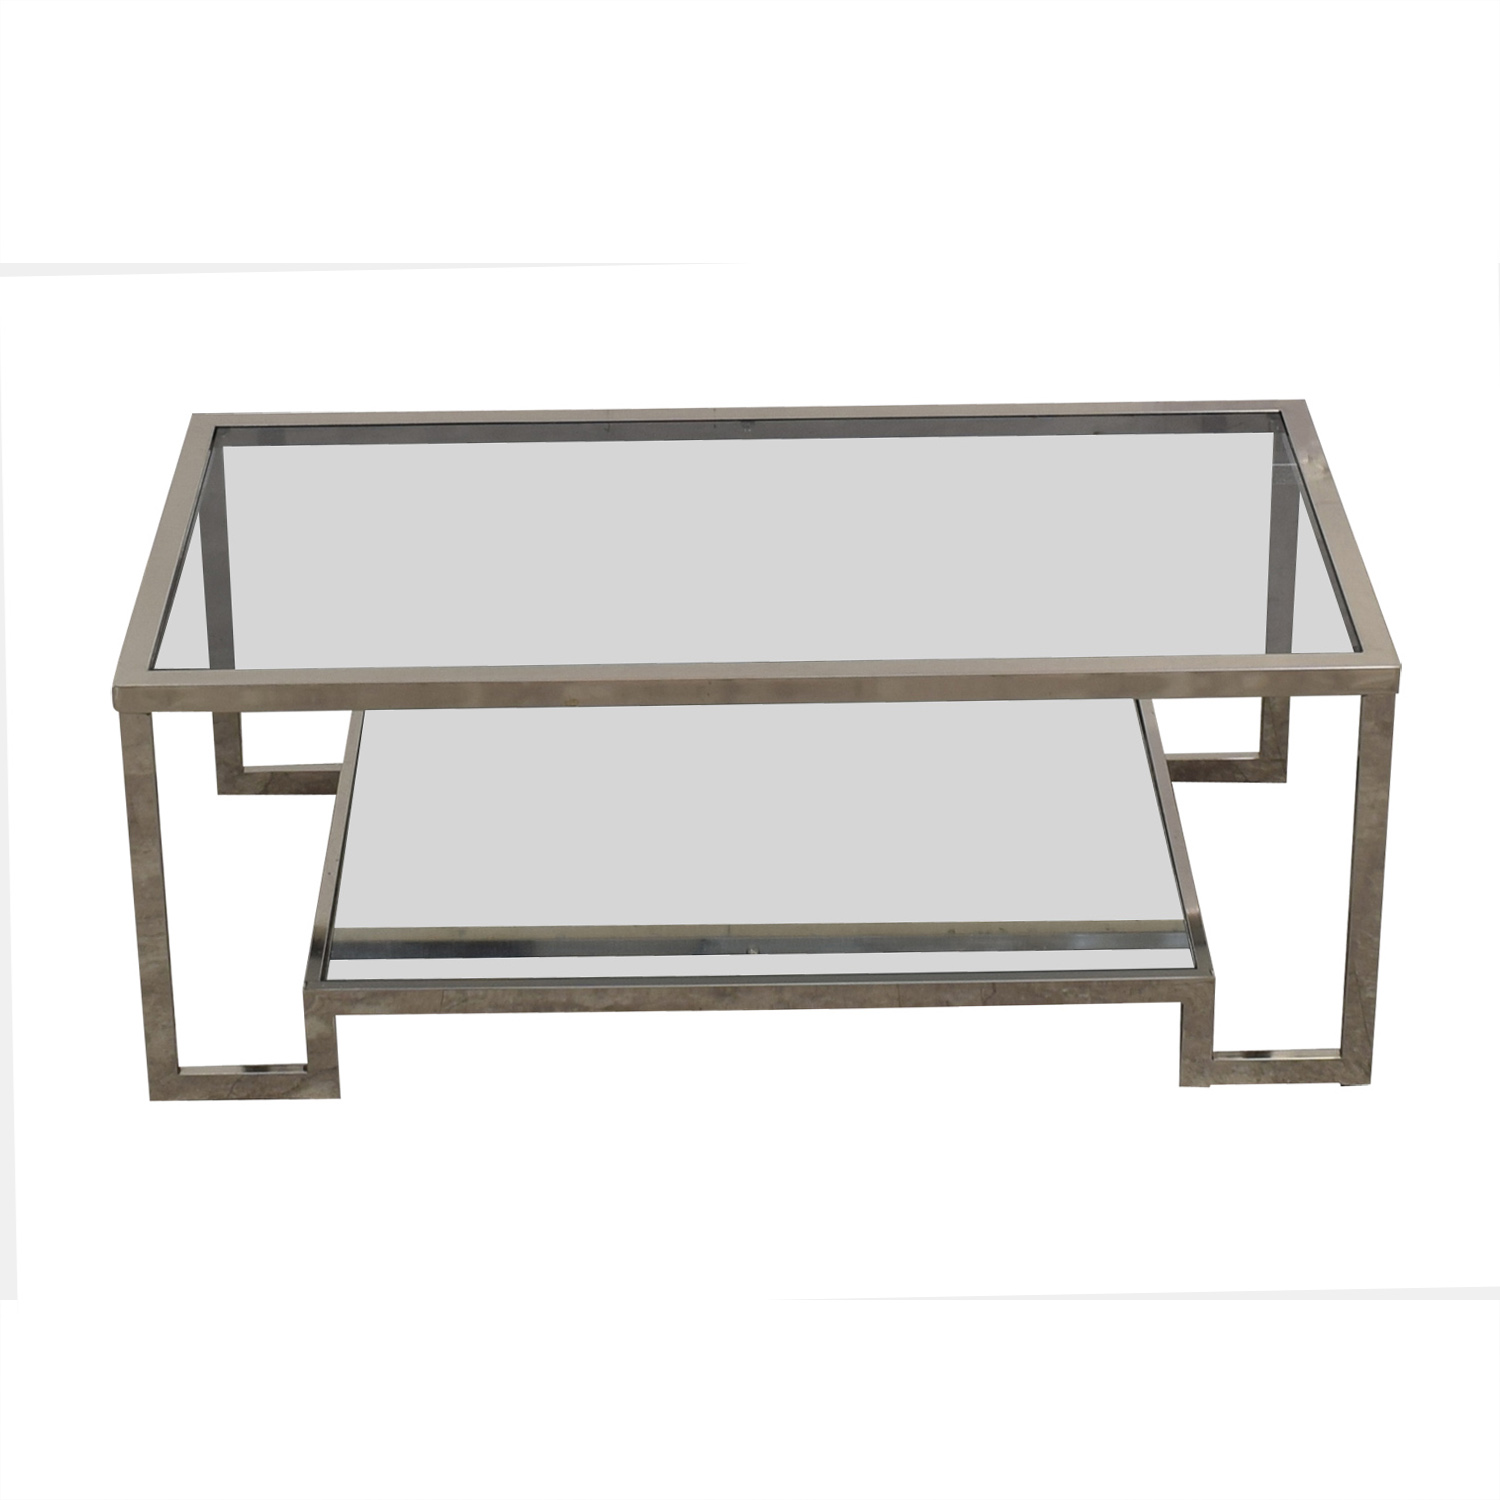 Overstock Overstock Glass Coffee Table used